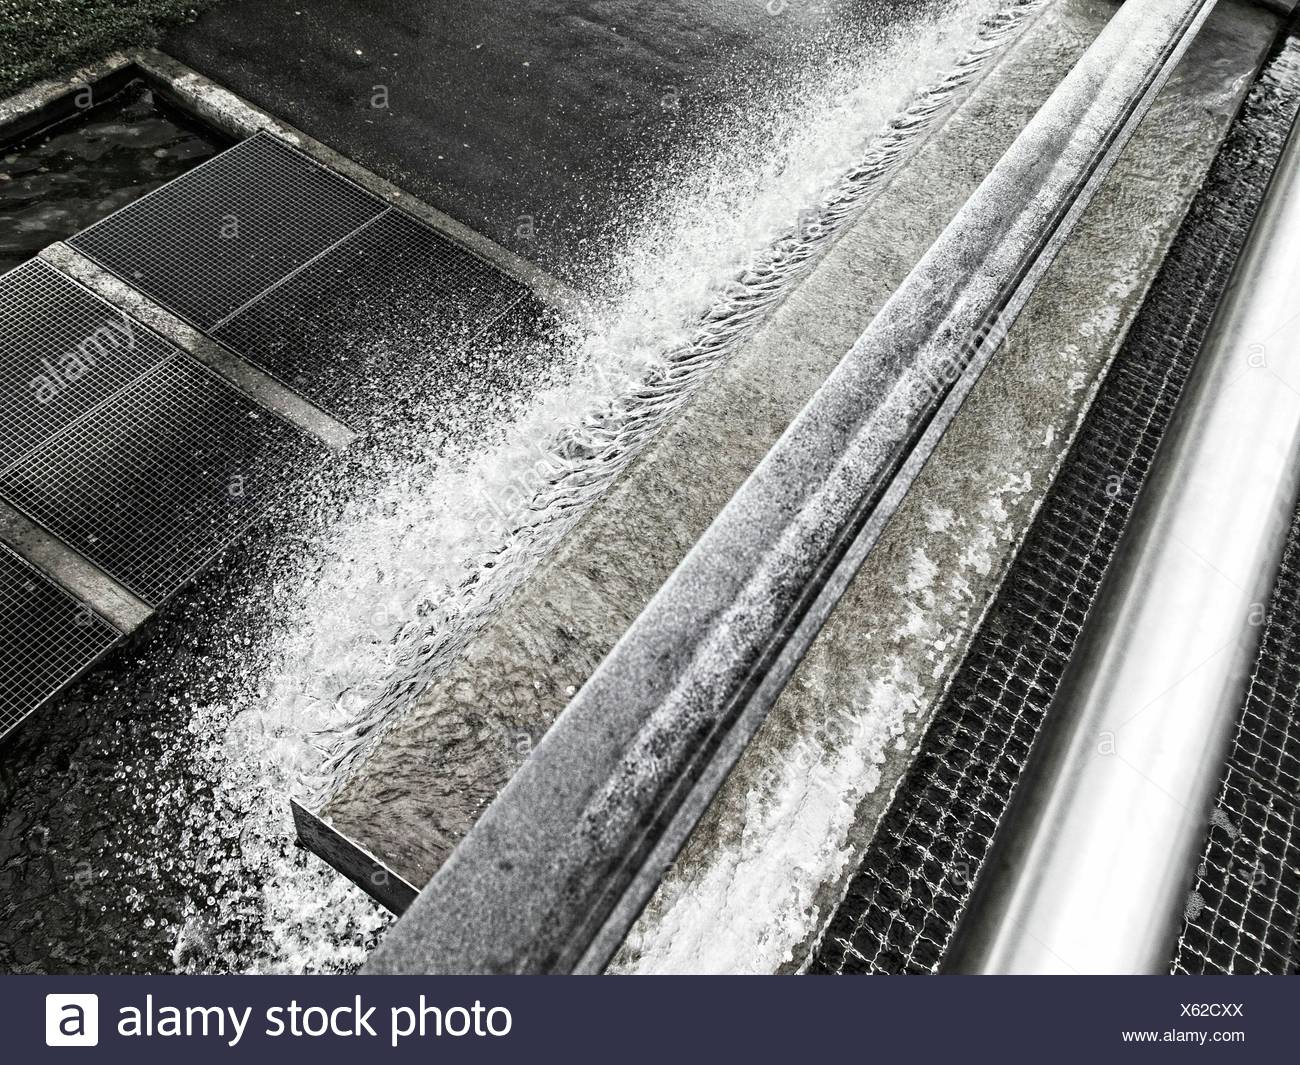 High Angle View Of Frozen Drainage By Sidewalk - Stock Image